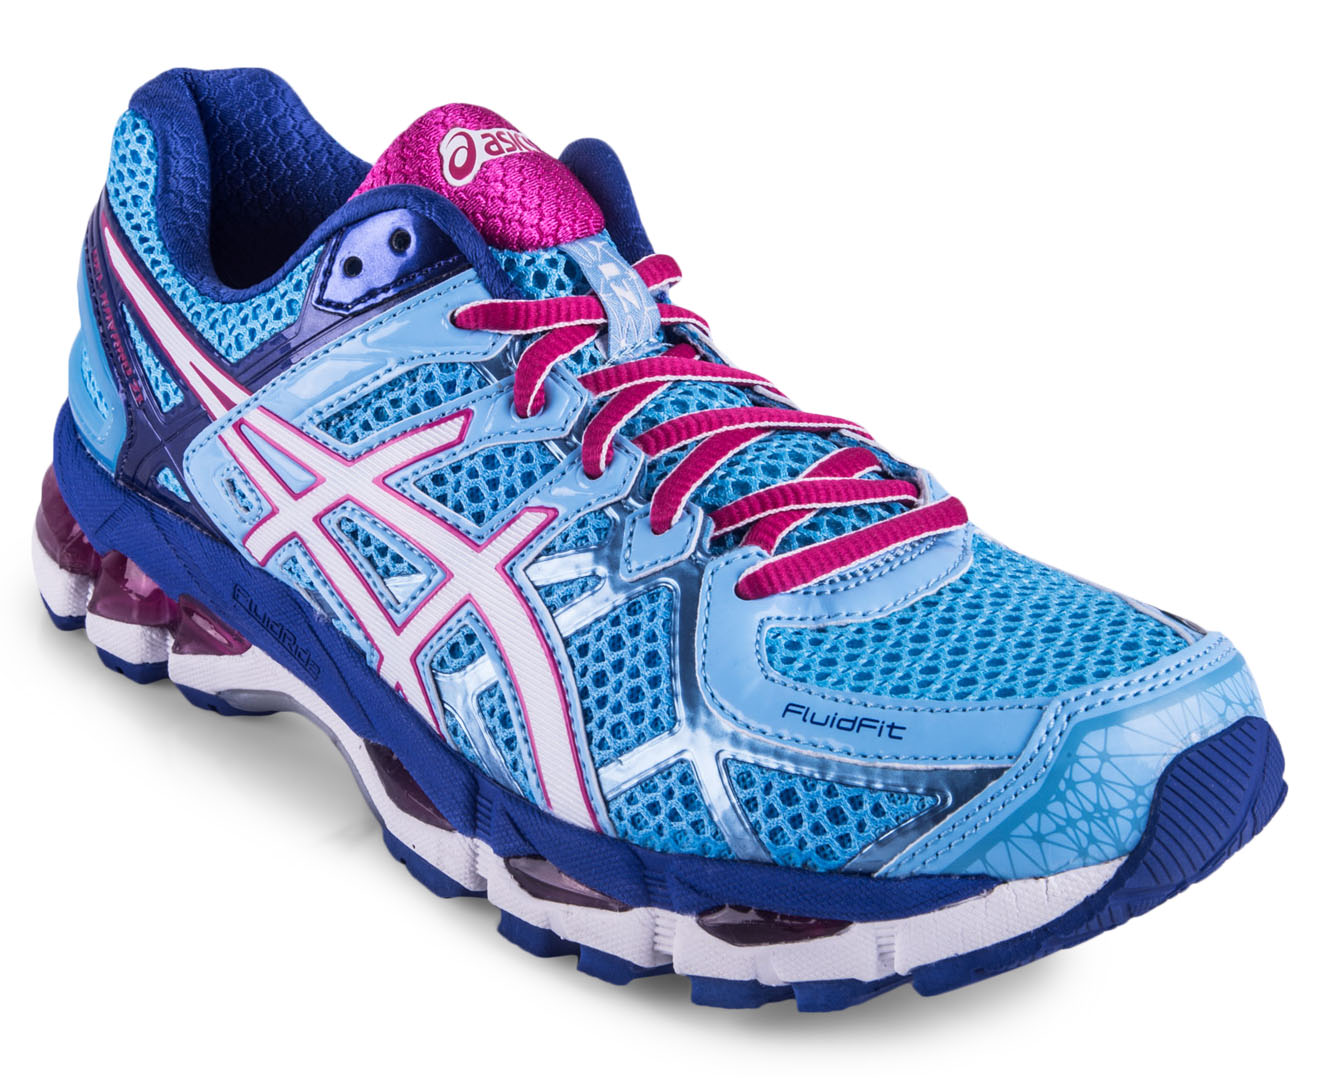 asics kayano 21 powder blue